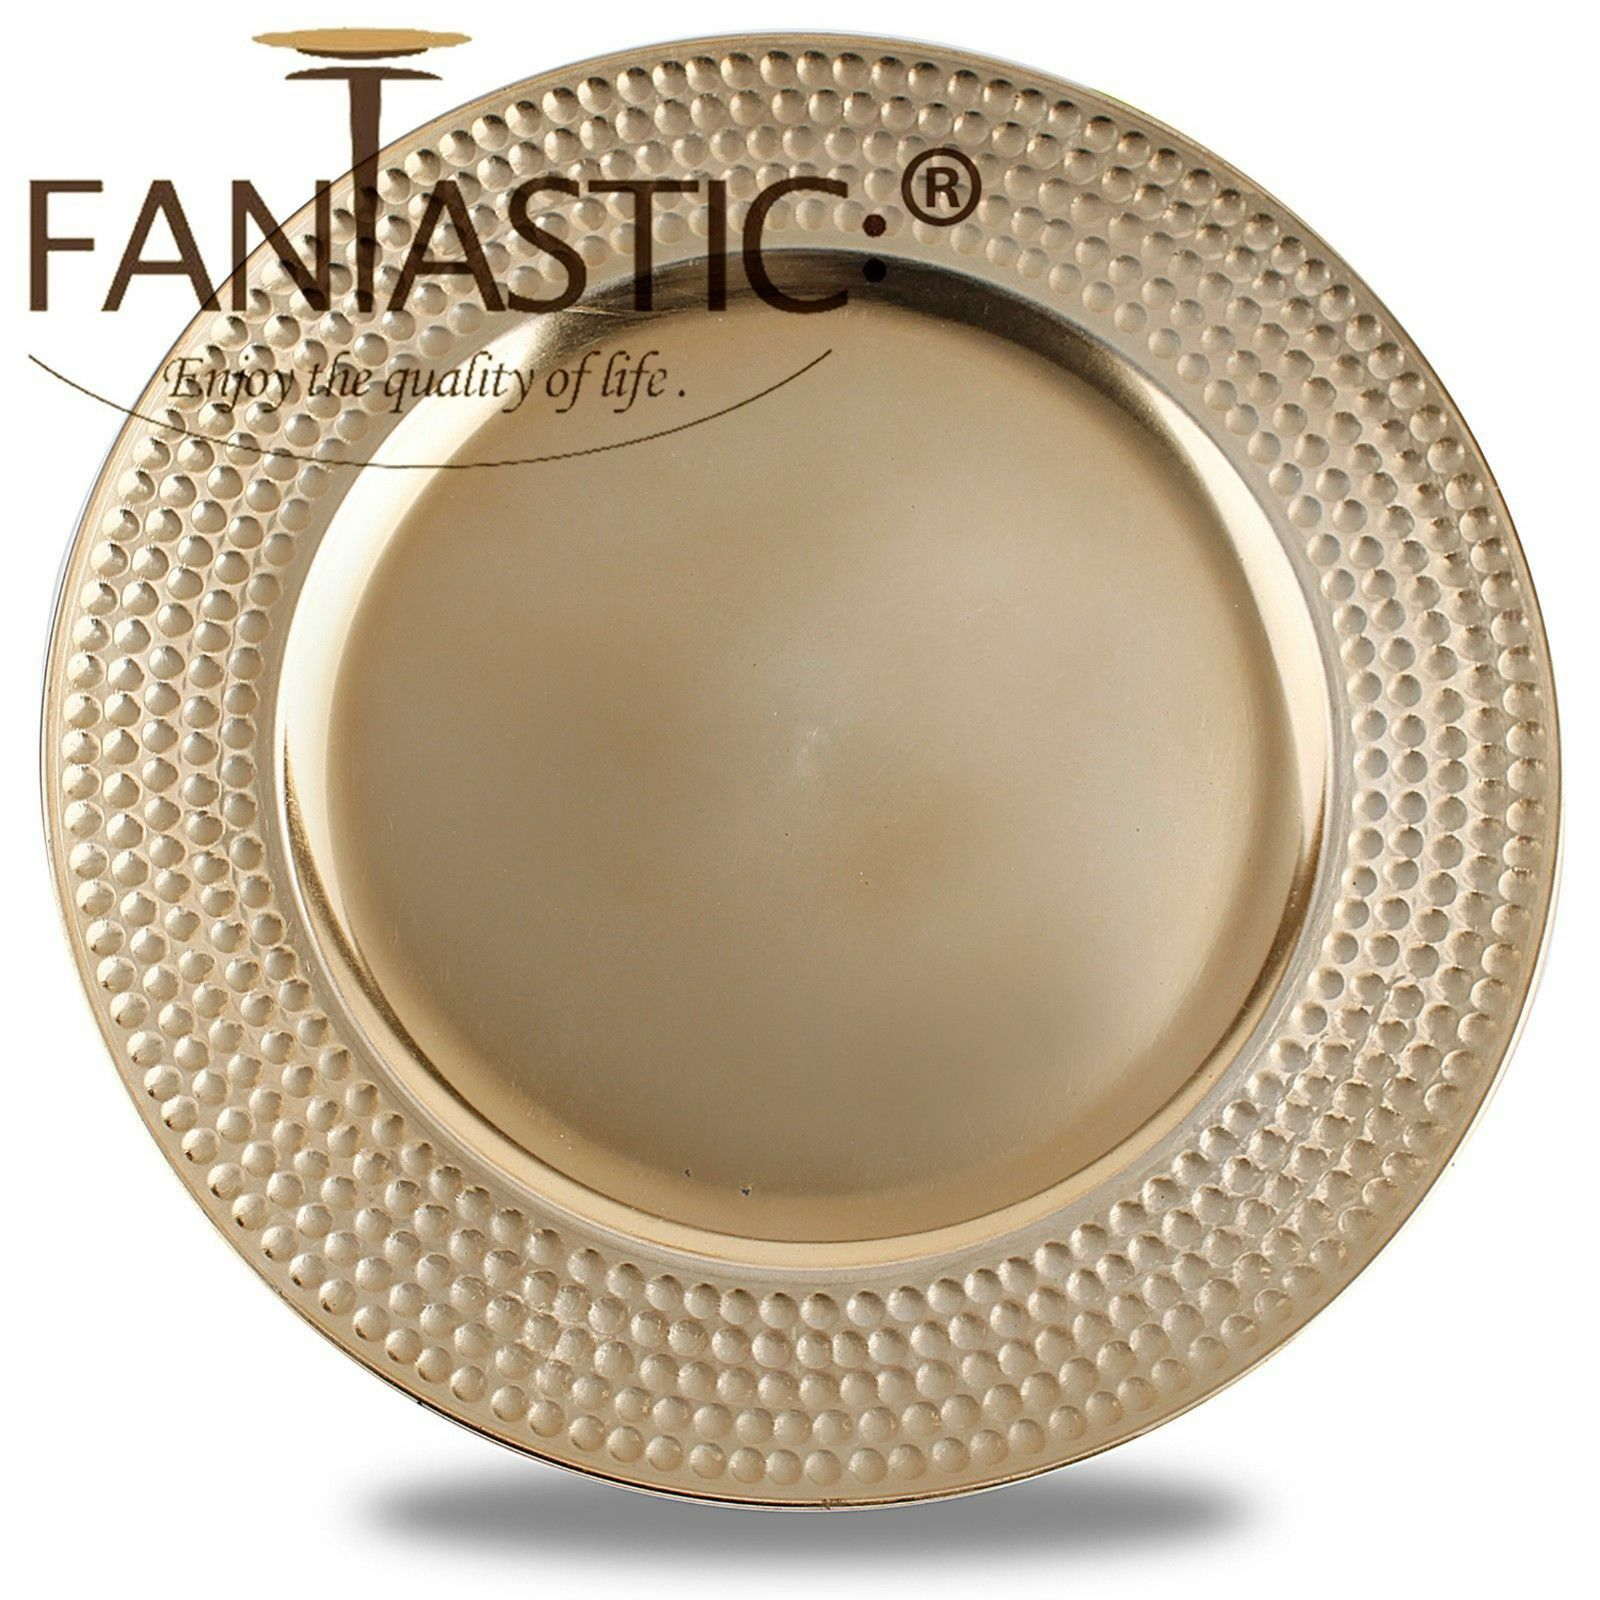 Fantastic )™ Round 13Inch Charger Plate With Metallic Finish ( Hammer Pattern )